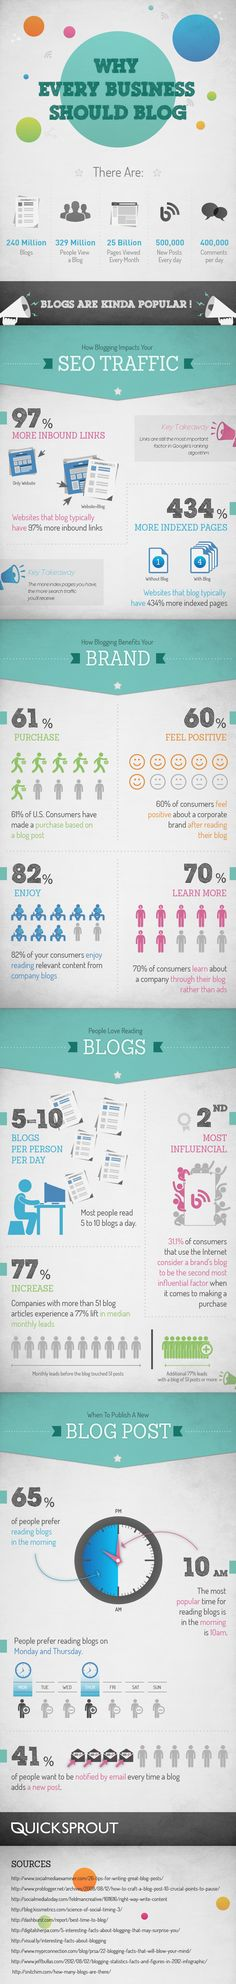 How Blogging Can Impact Businesses #seo [INFOGRAPHIC] (scheduled via ) #searchengineoptimizationbenefits,